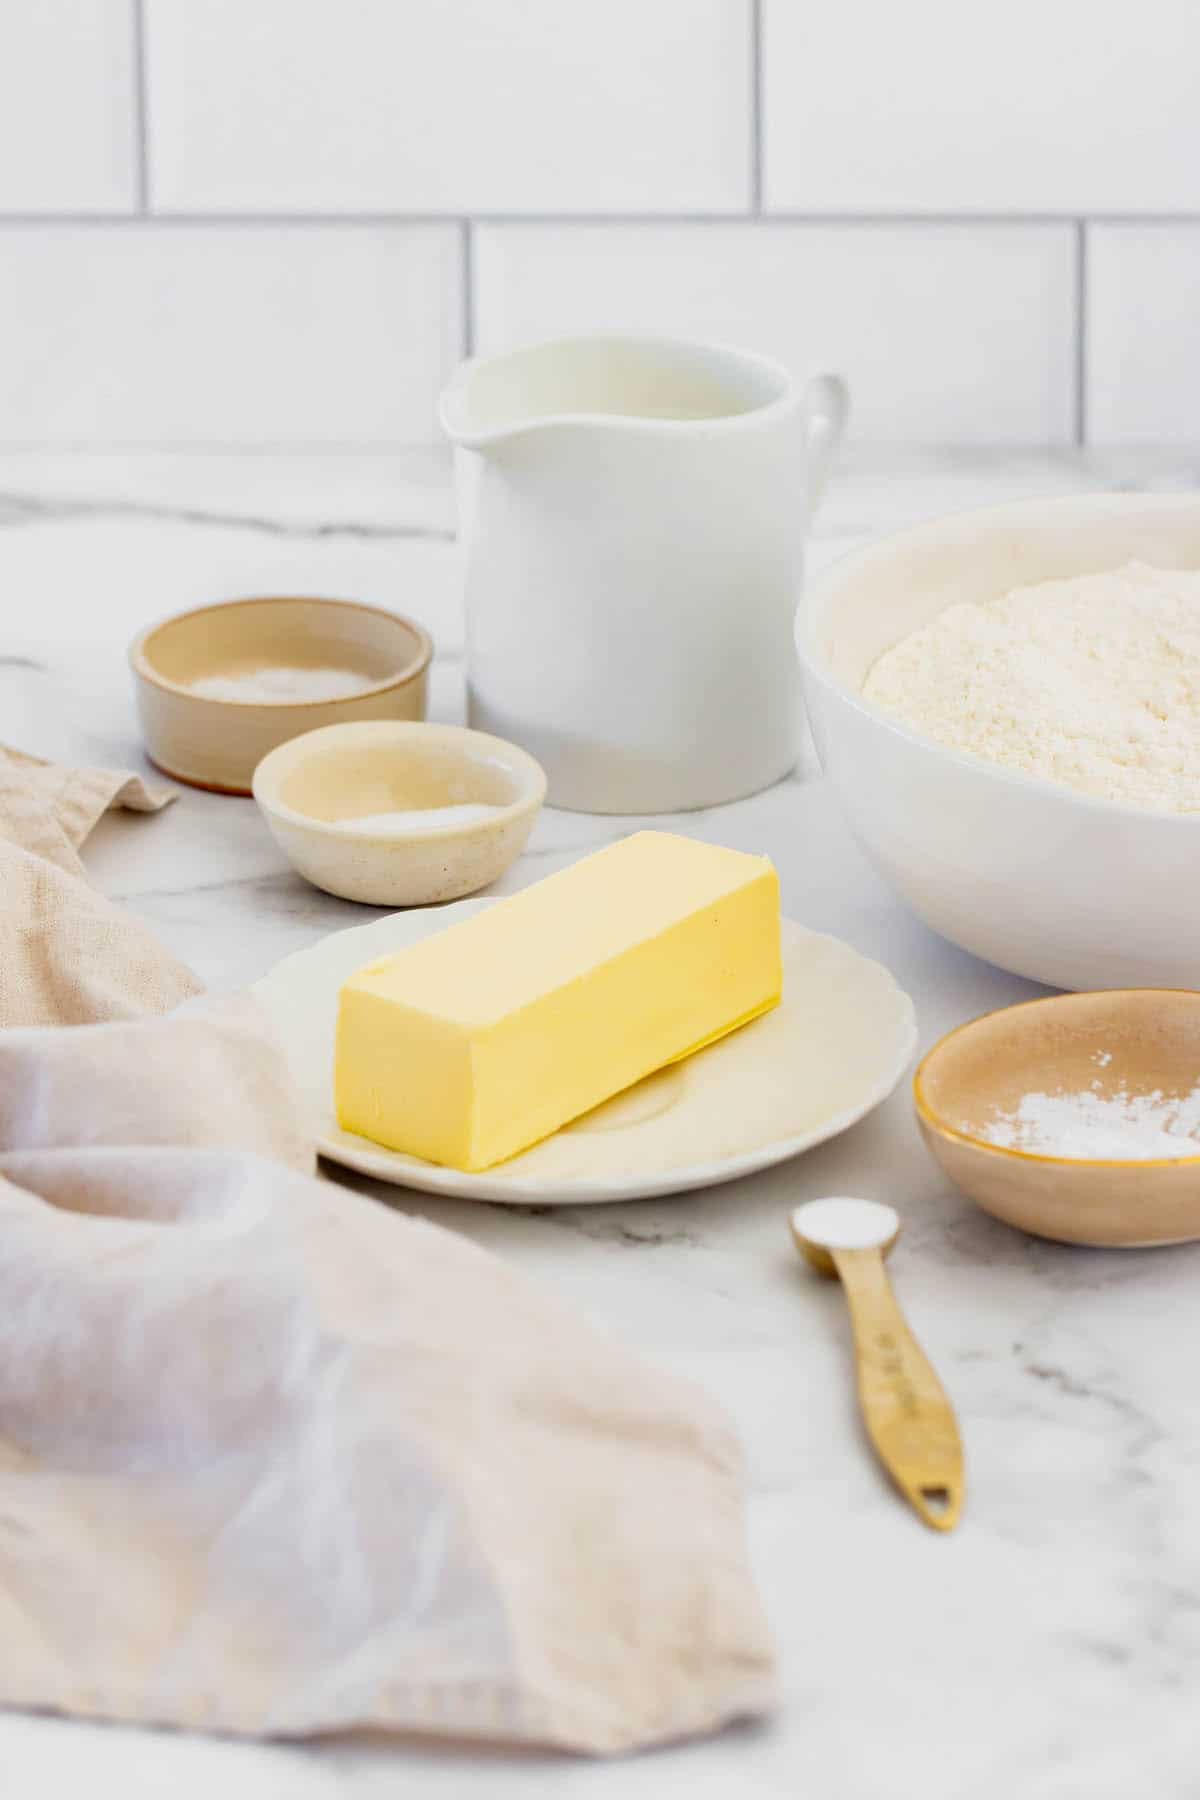 Cold Butter, Sugar, Salt, Gluten-Free Flour and the Rest of the Biscuit Ingredients